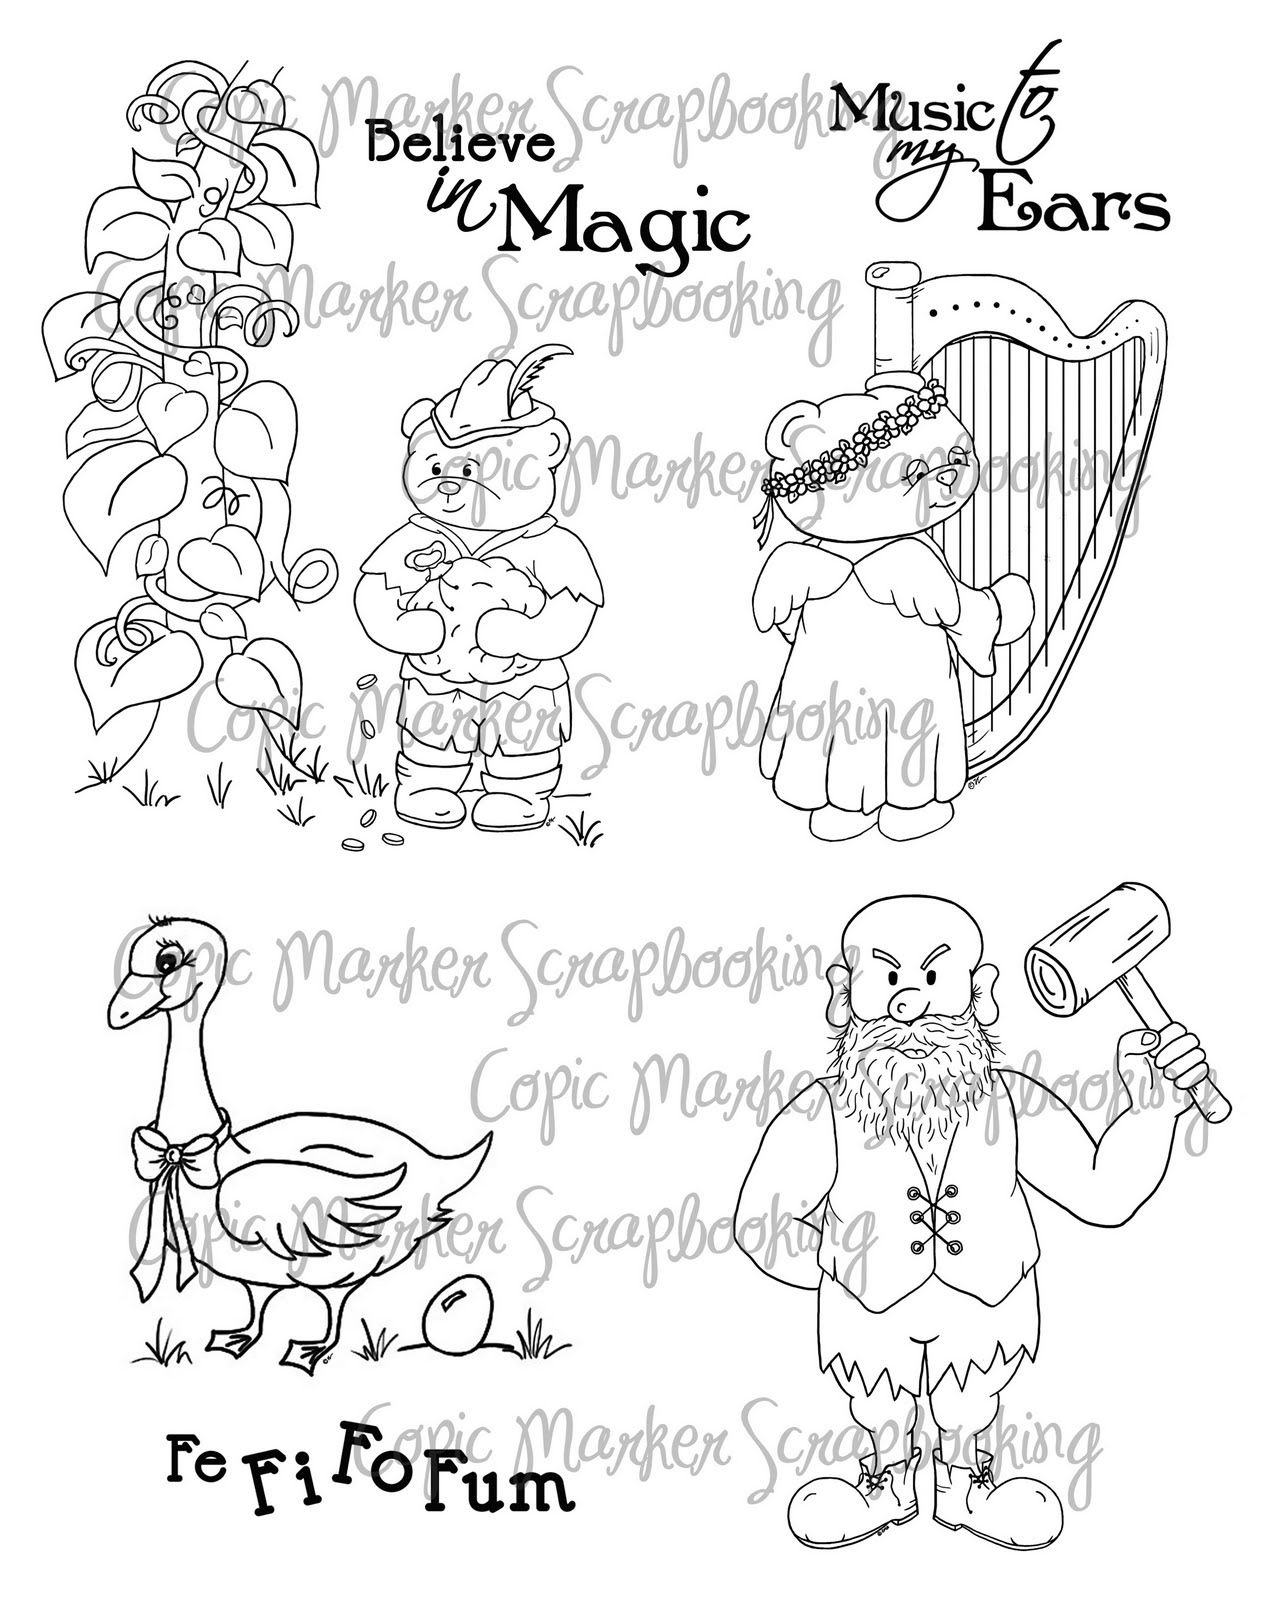 Free coloring pages for jack and the beanstalk - Colouring Pages For Jack And The Beanstalk Jack And The Beanstalk Castle Coloring Pages Viewing